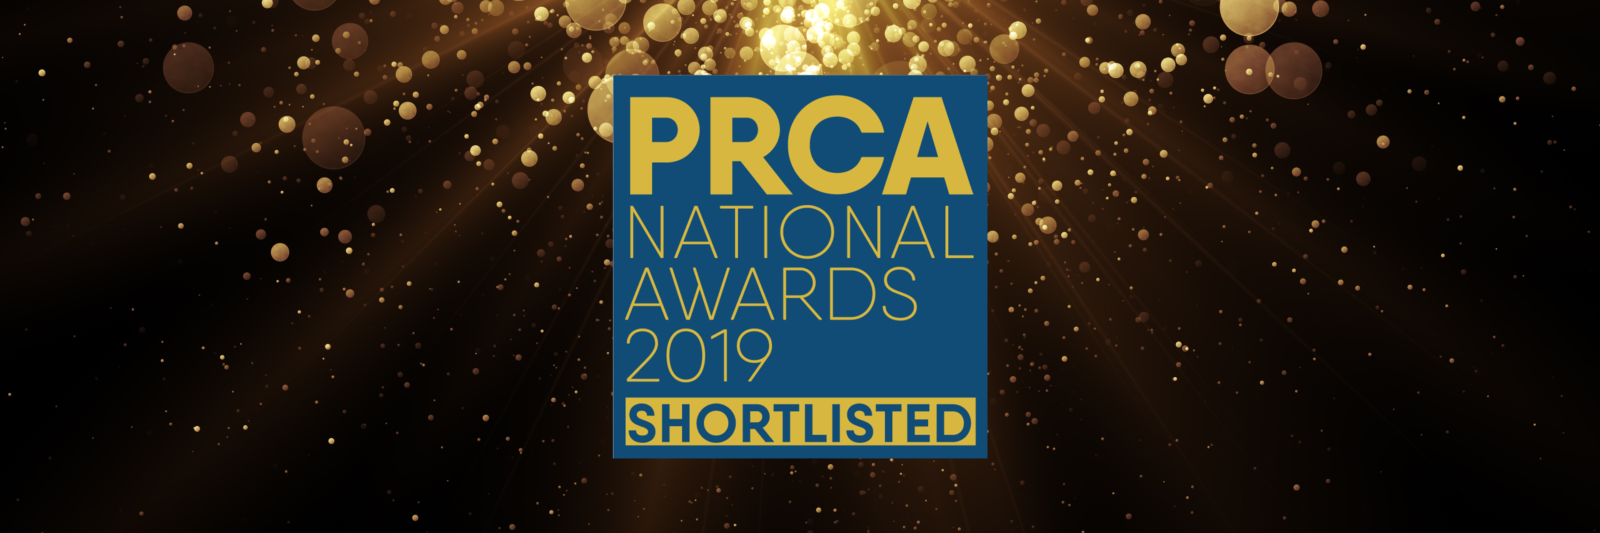 PRCA National Awards Shortlist